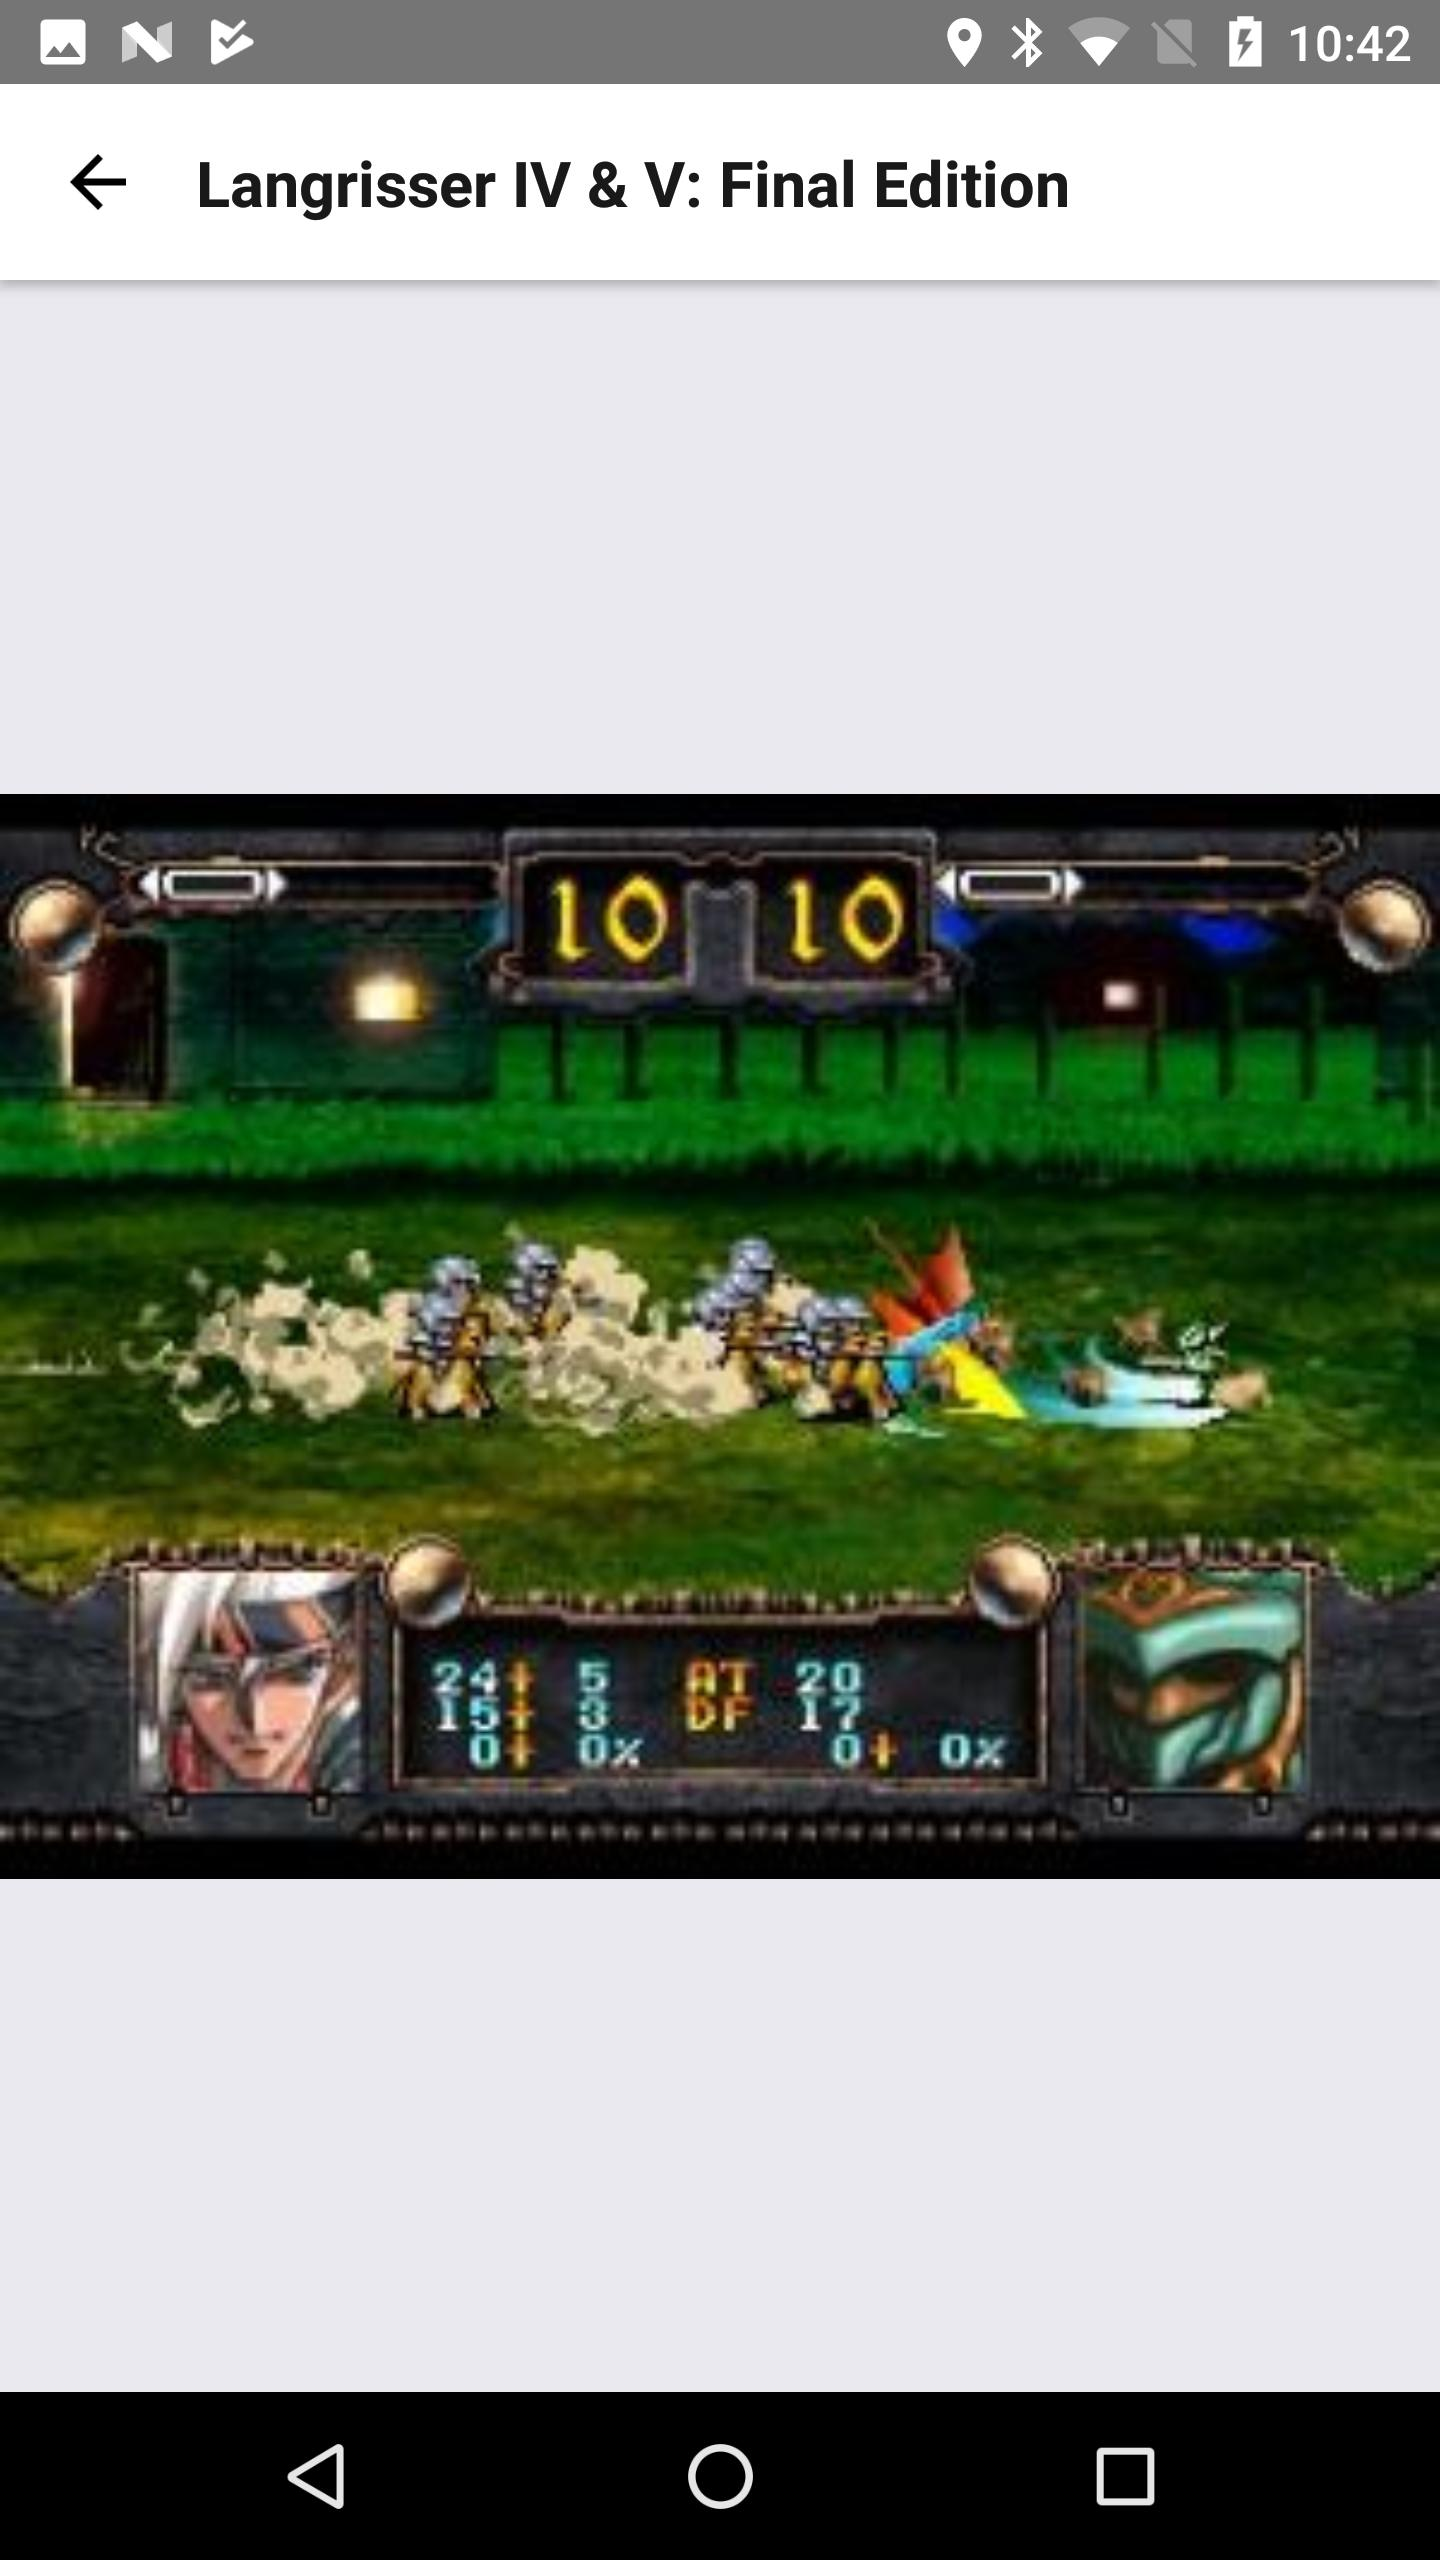 Retro Game Center for Android - APK Download